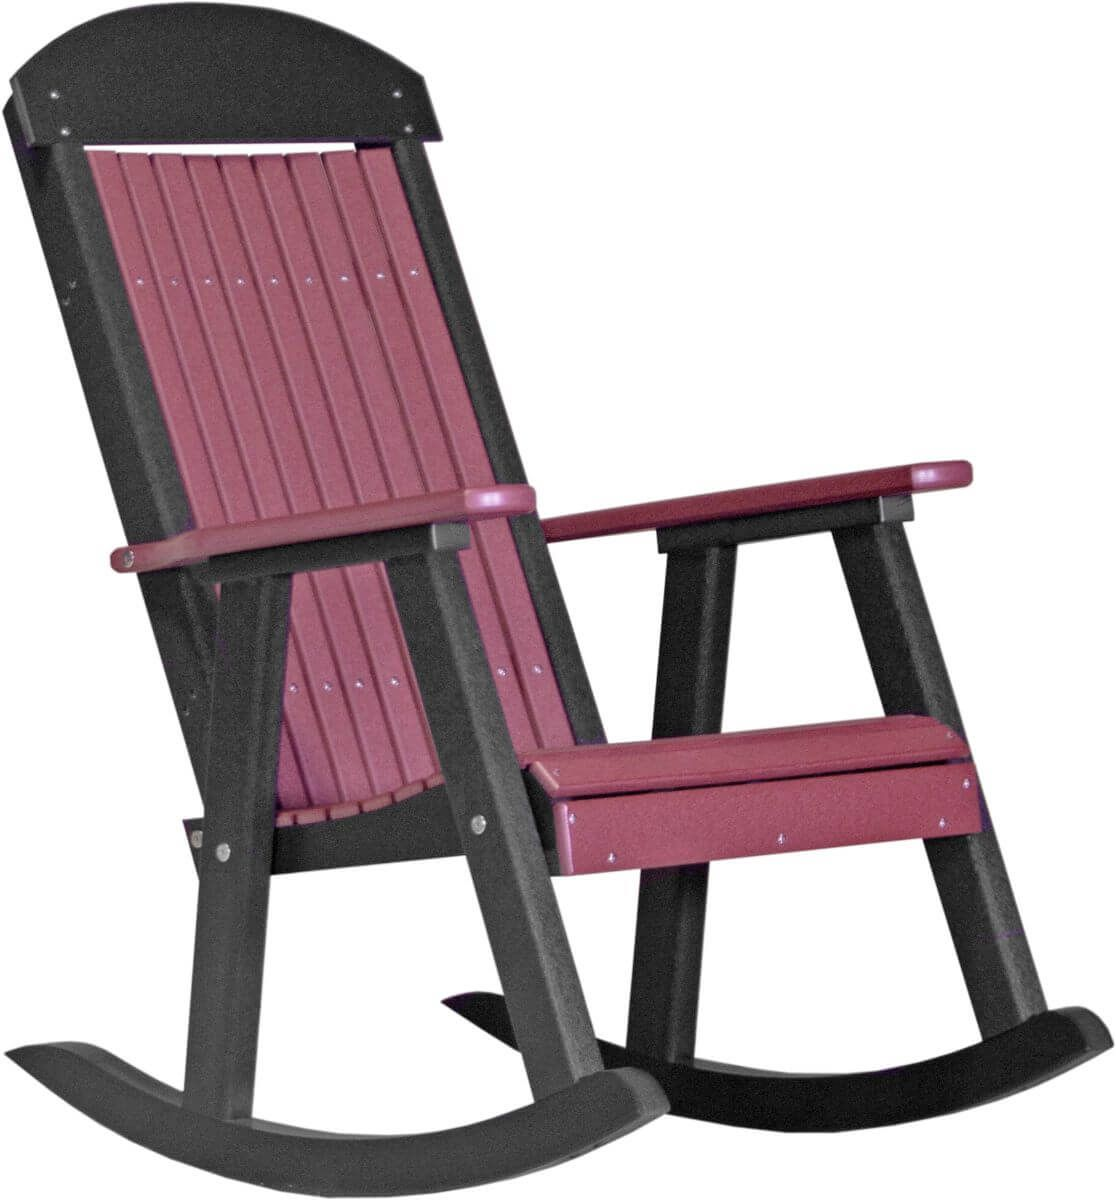 Cherrywood and Black Stockton Porch Rocker